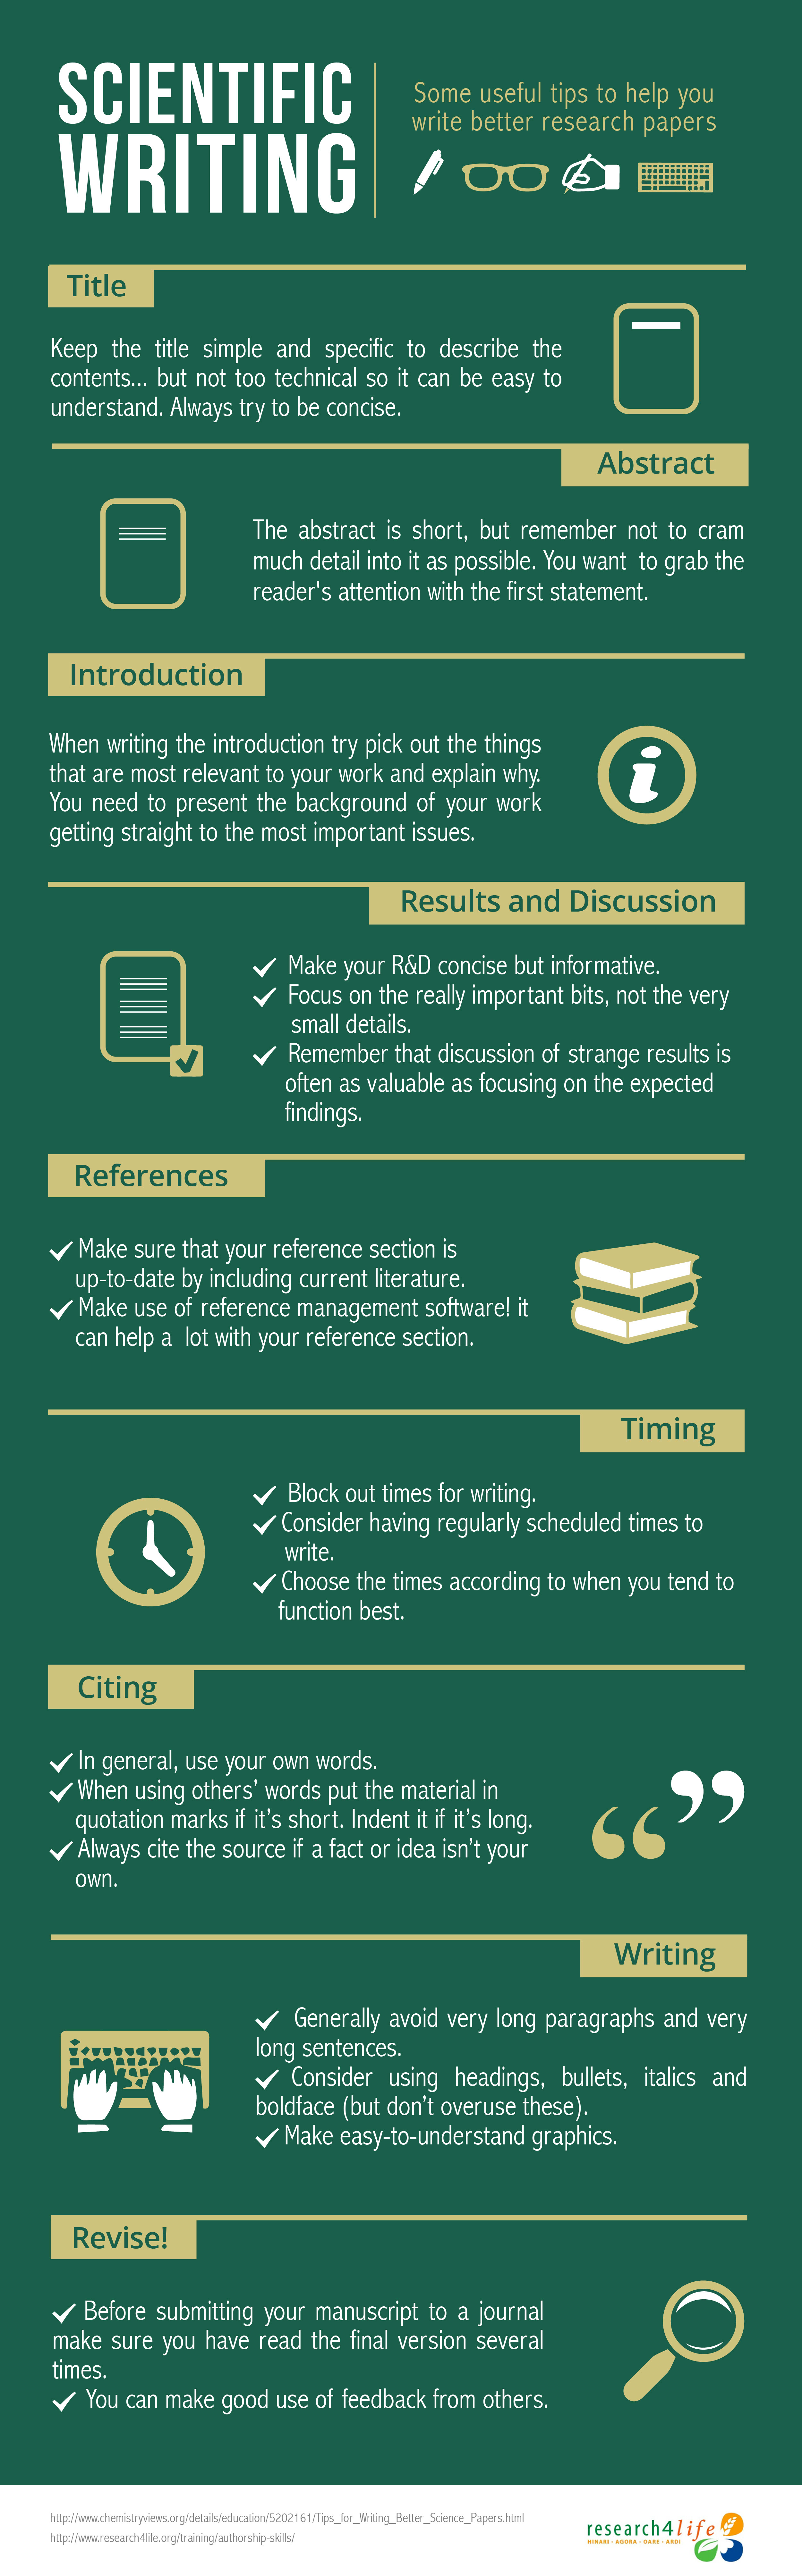 001 Research Paper Best Tips For Writing Scientific Remarkable A Way To Write Thesis Persuasive Full